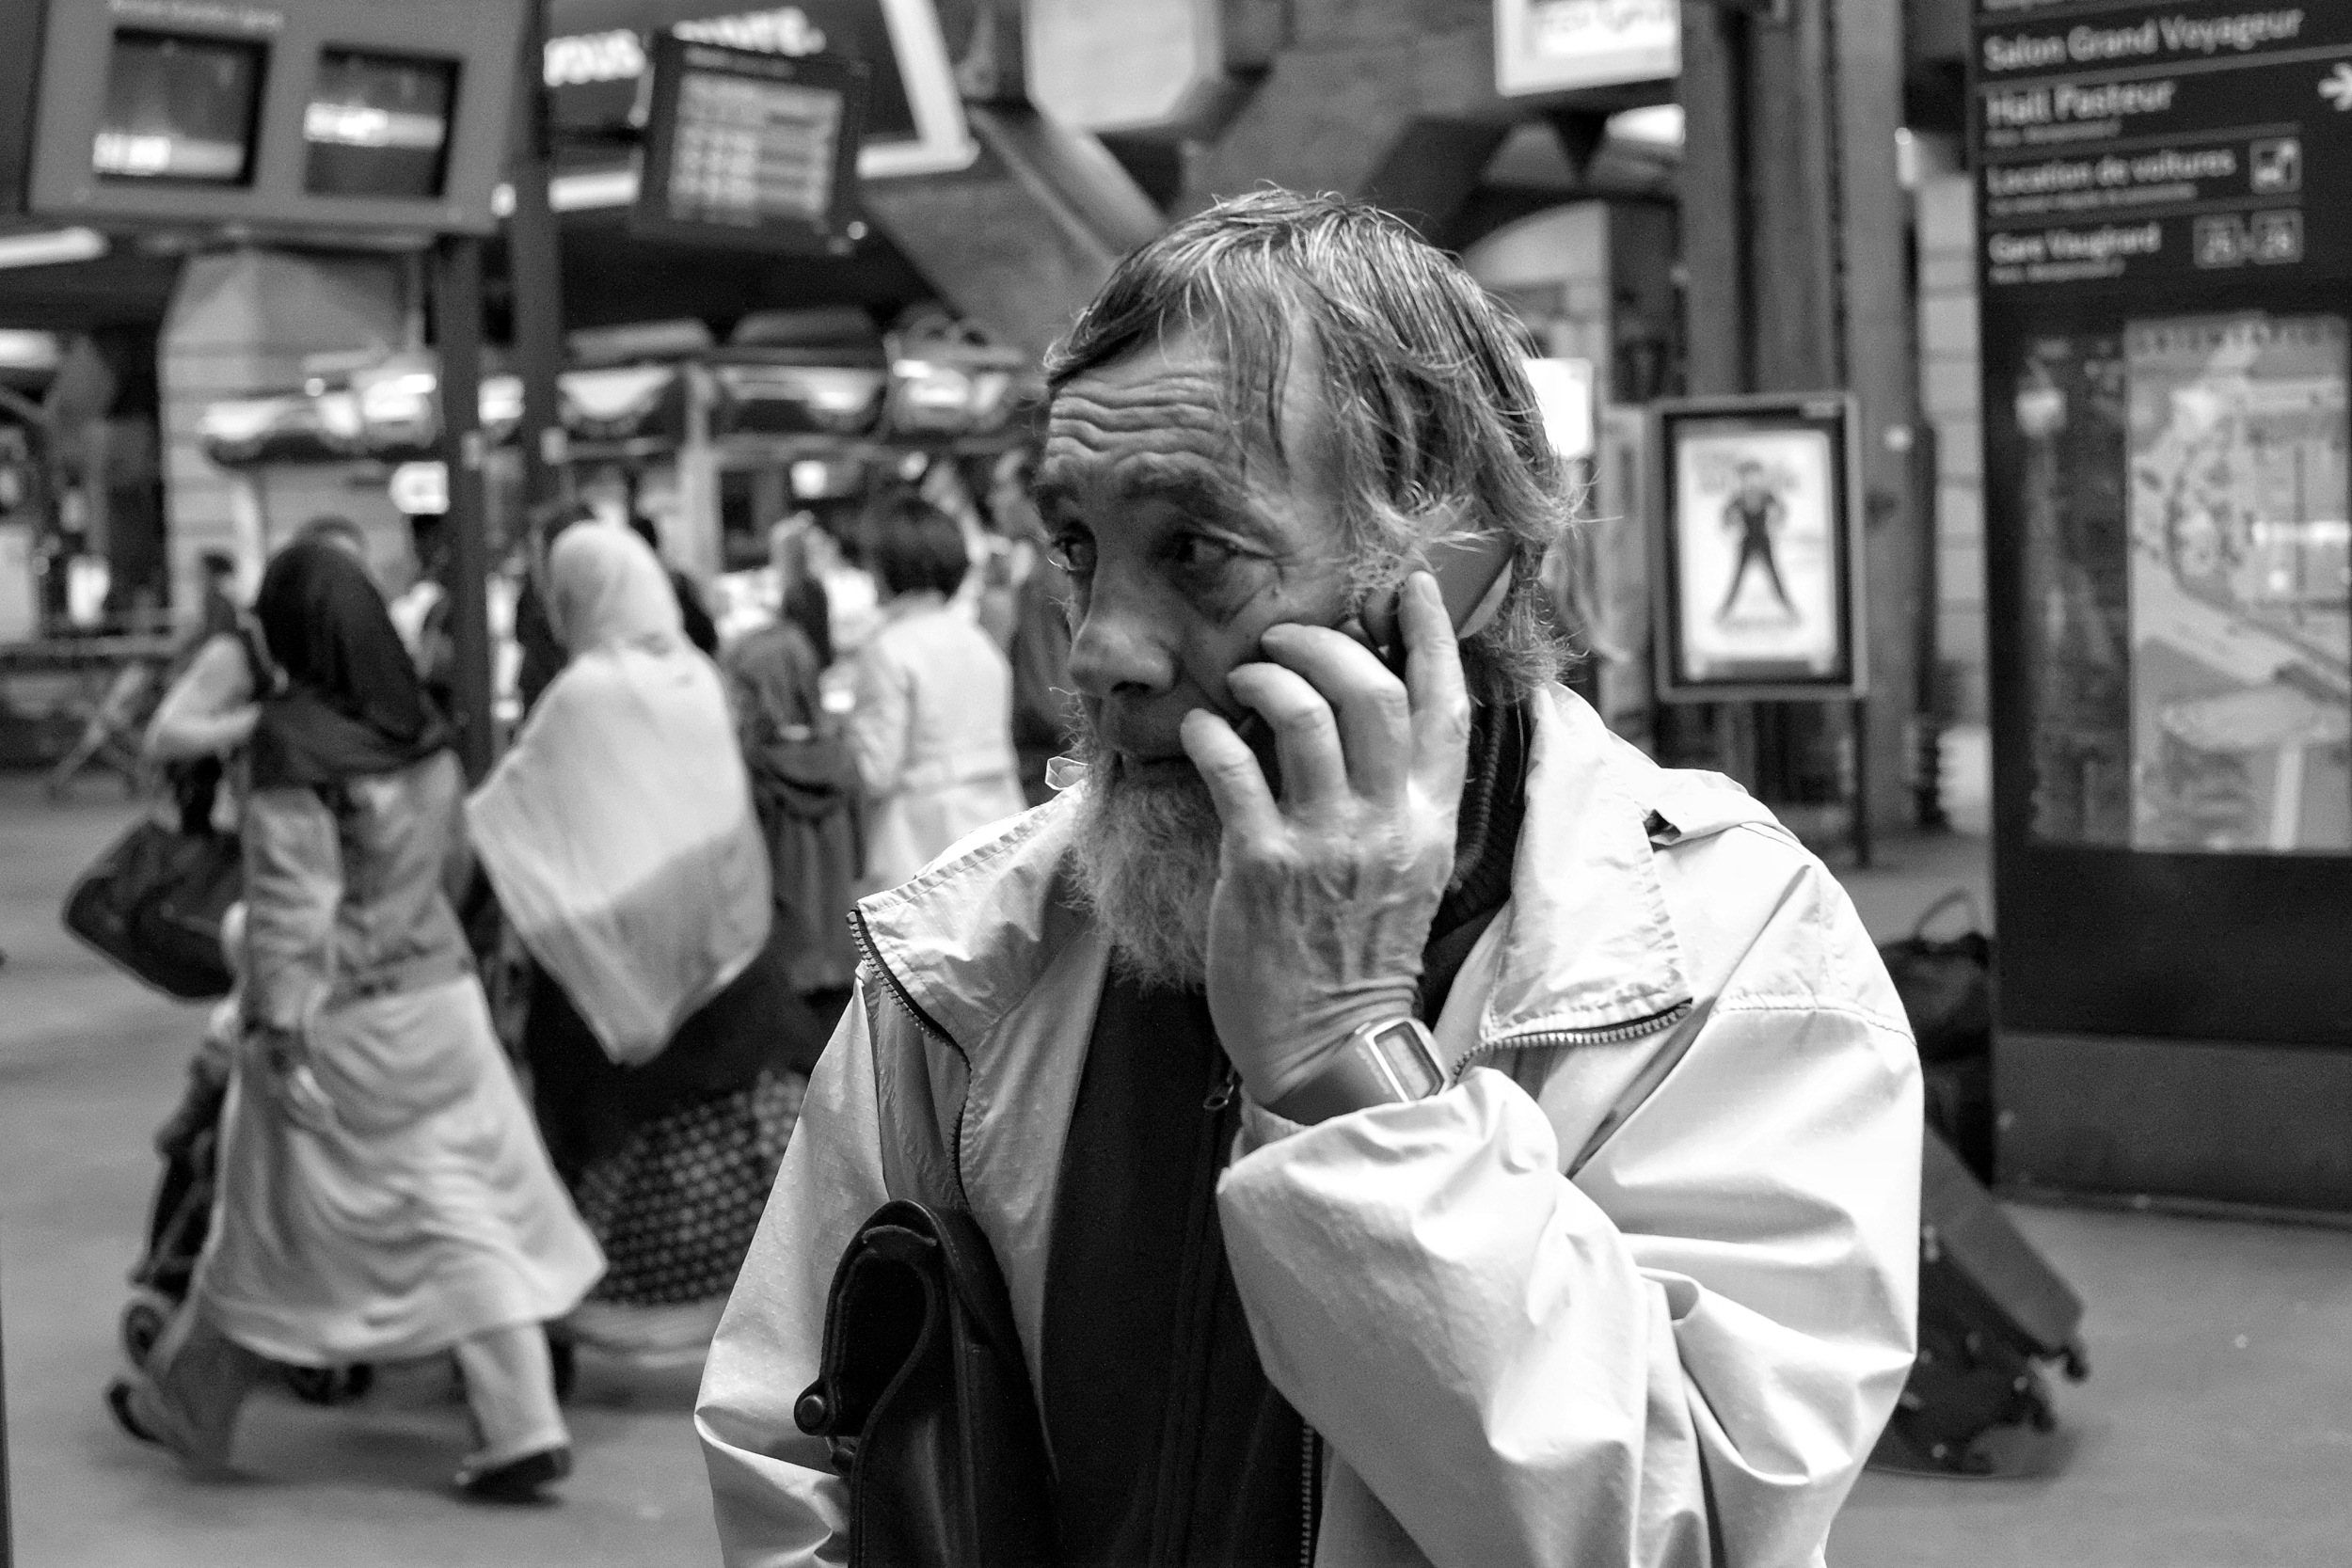 Man on his telephone at Montparnasse station in Paris - Fuji X-Pro1